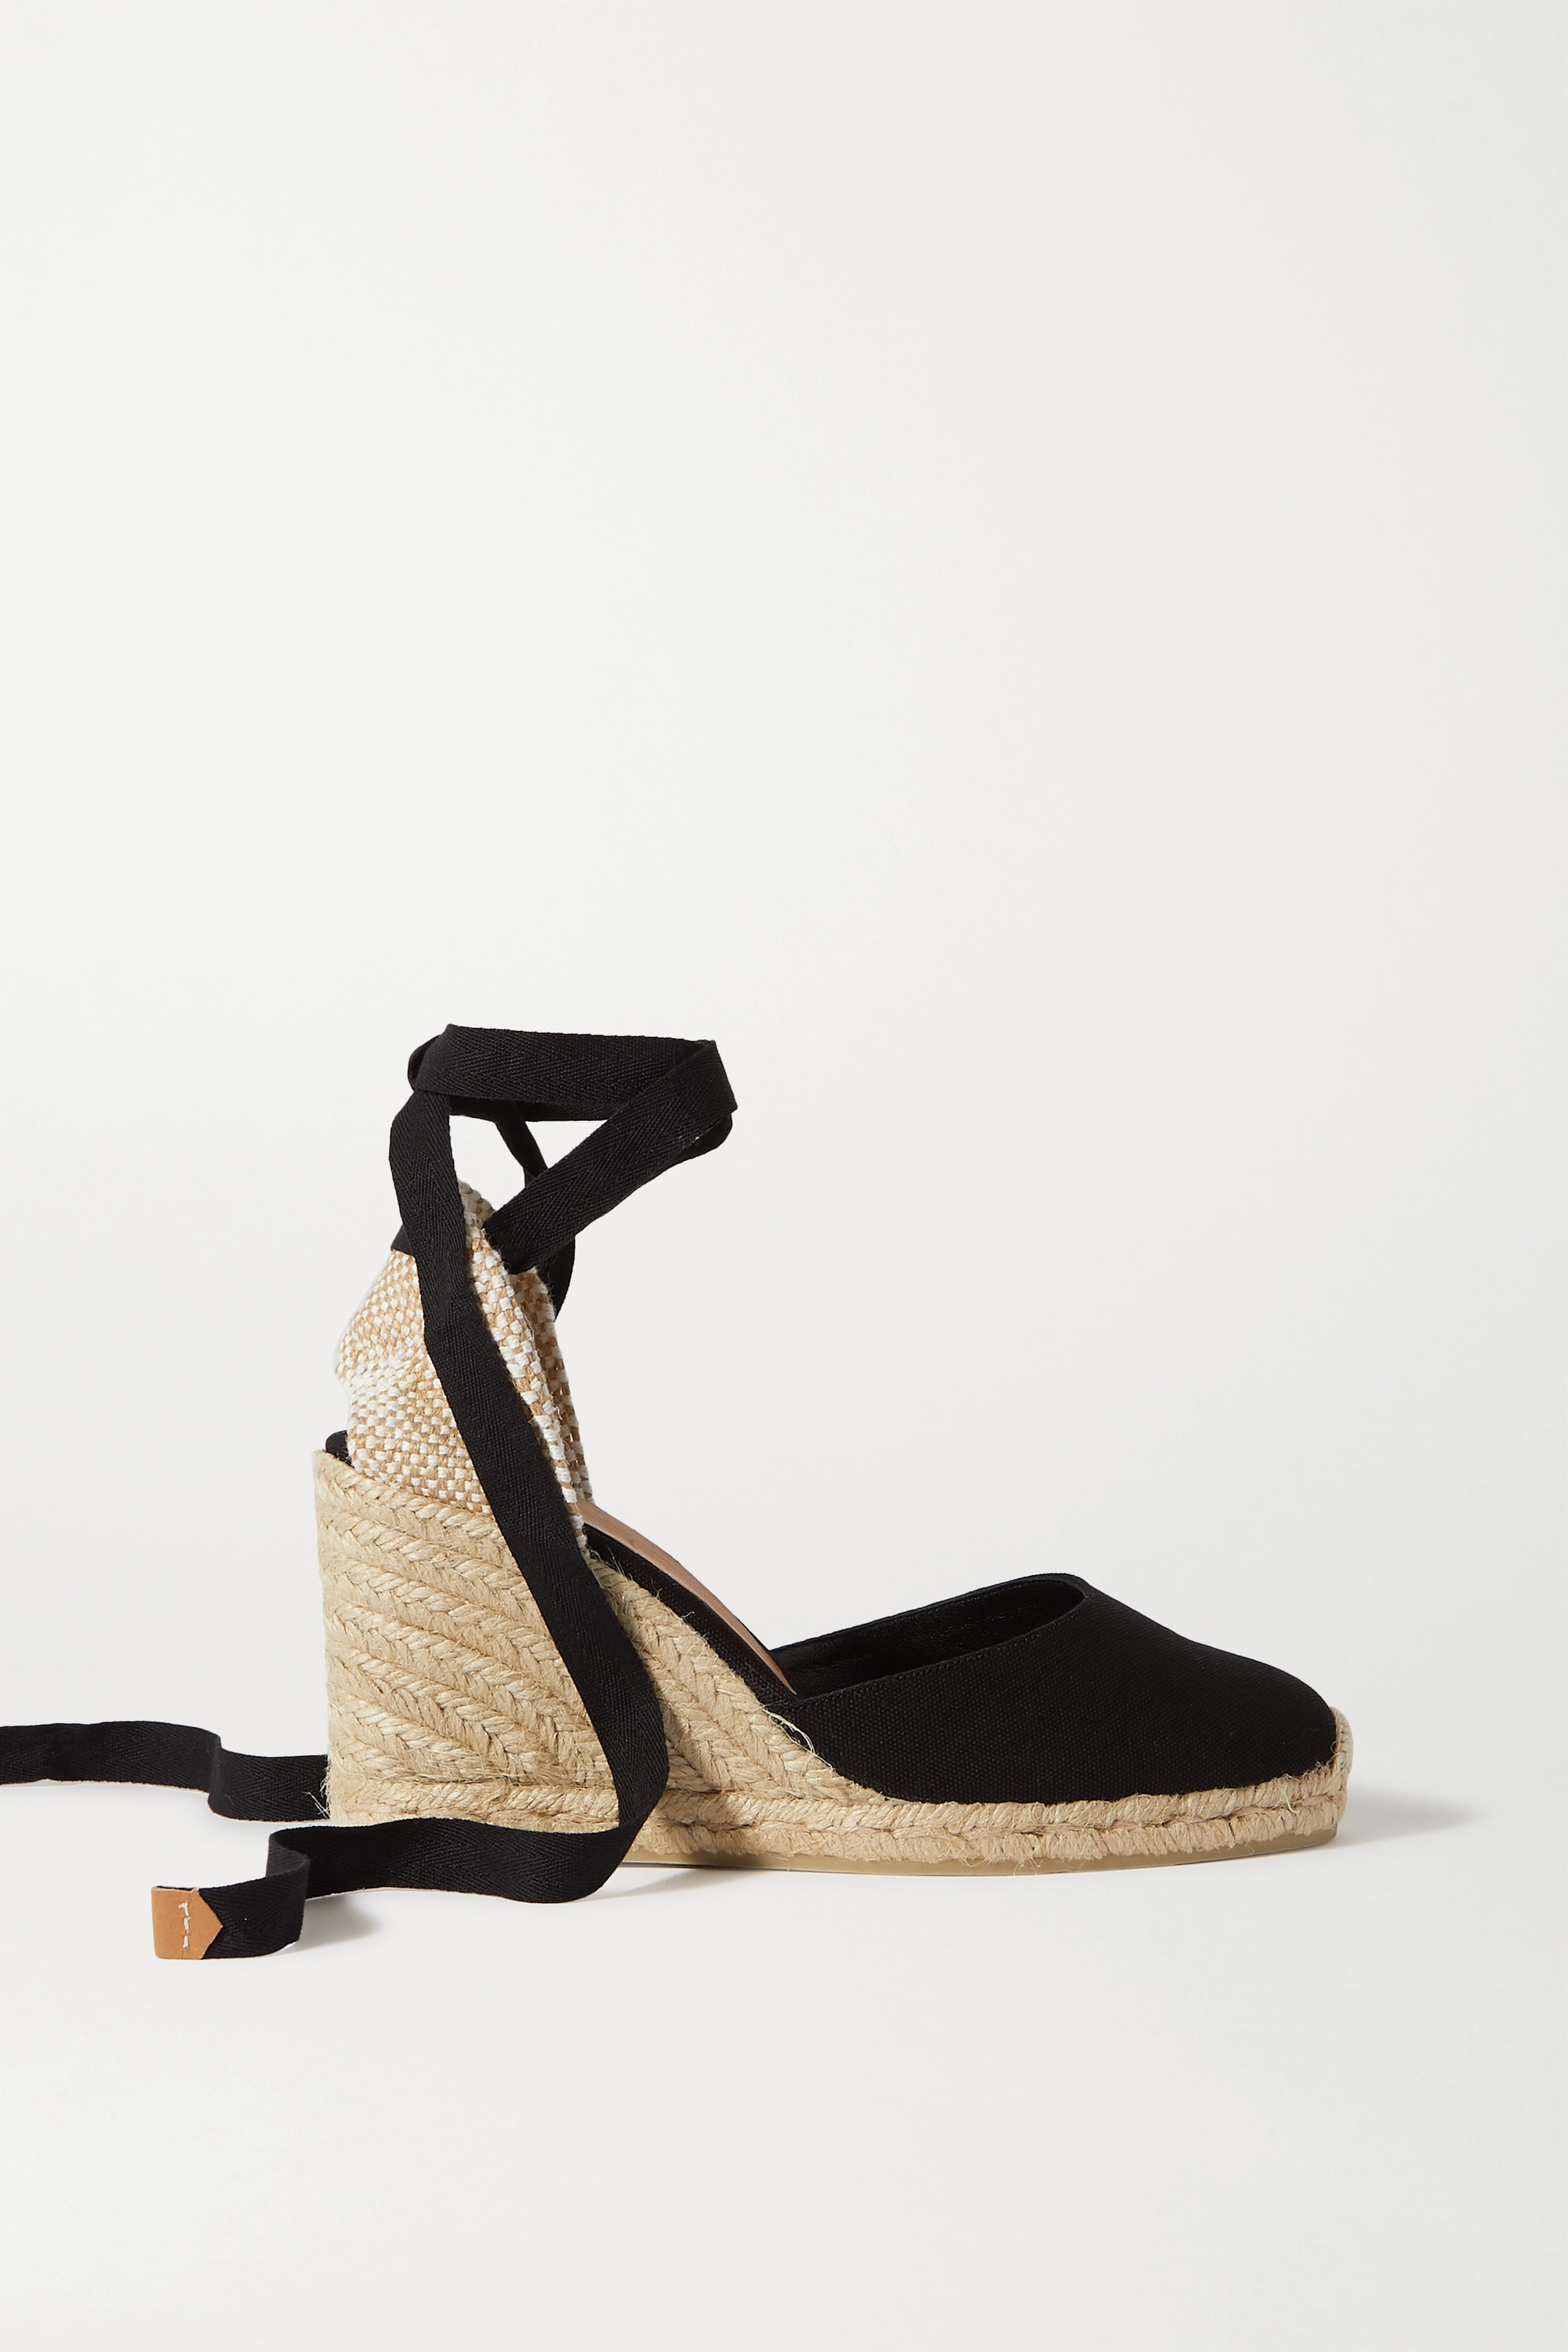 Castañer Carina 80 canvas wedge espadrilles